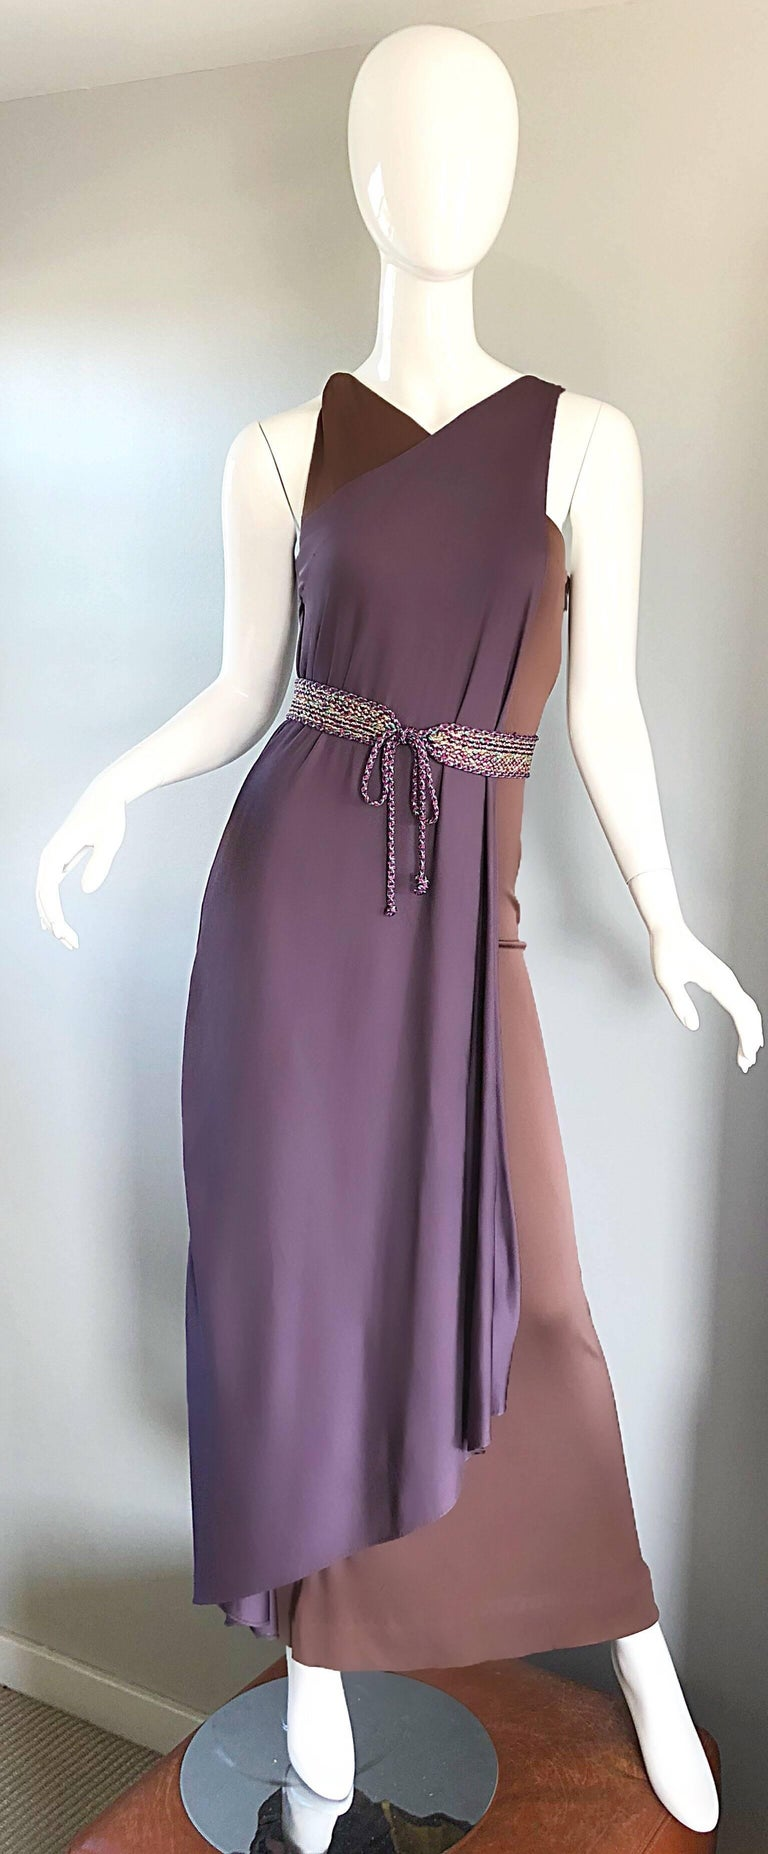 Vintage Bill Blass 1970s Purple + Brown Grecian Inspired Silk Jersey Belted Gown For Sale 4